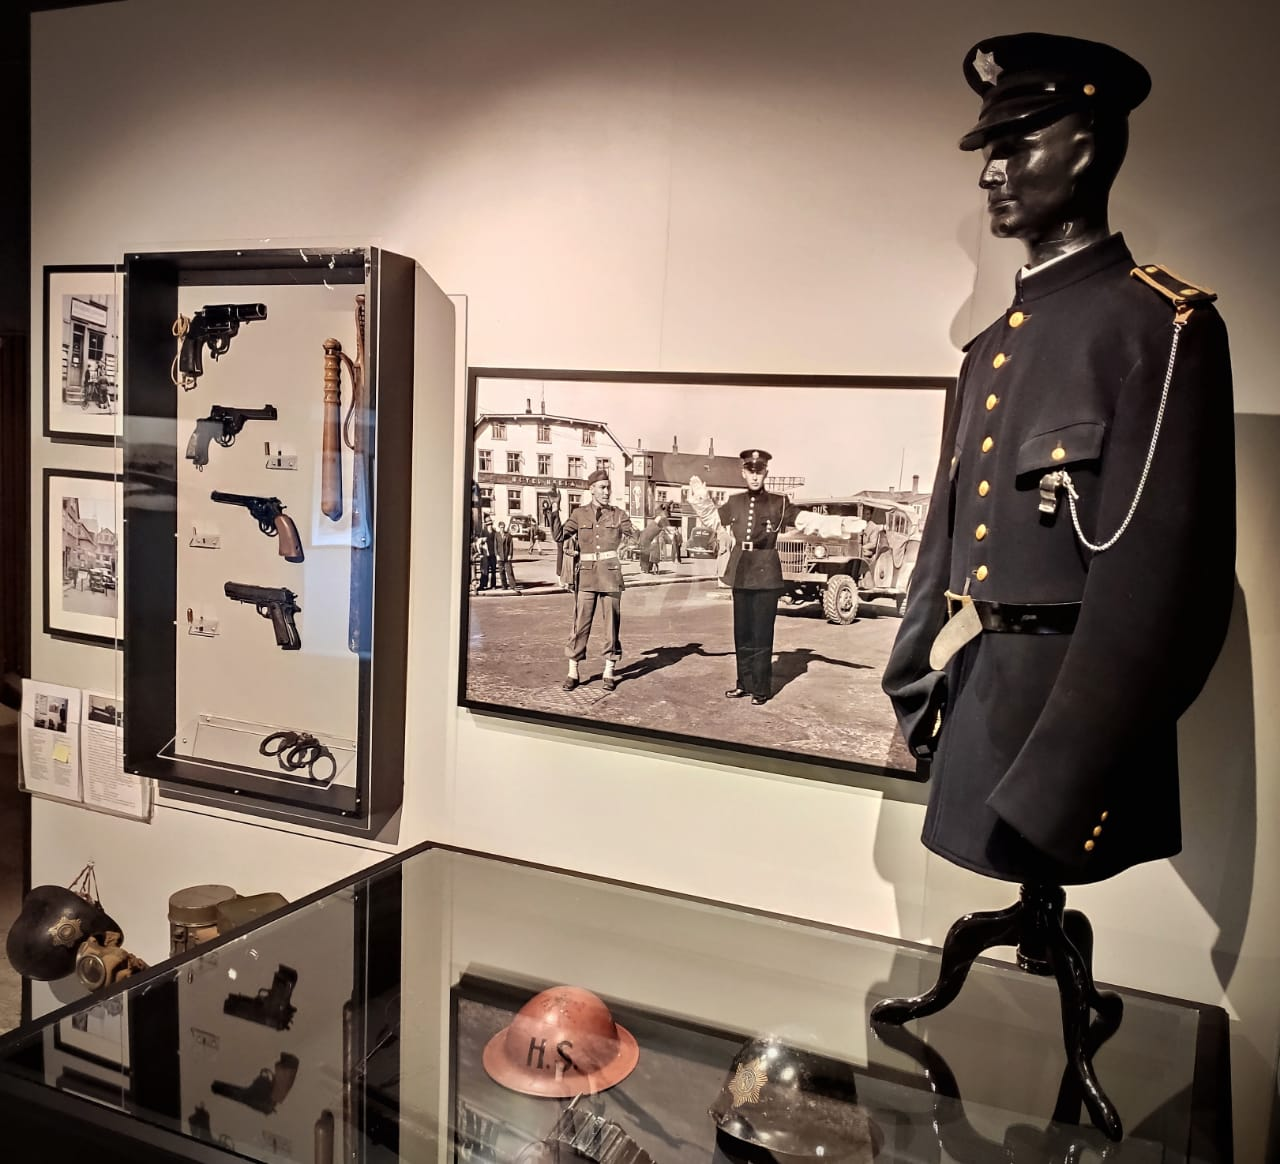 Exhibition at the Icelandic wartime museum